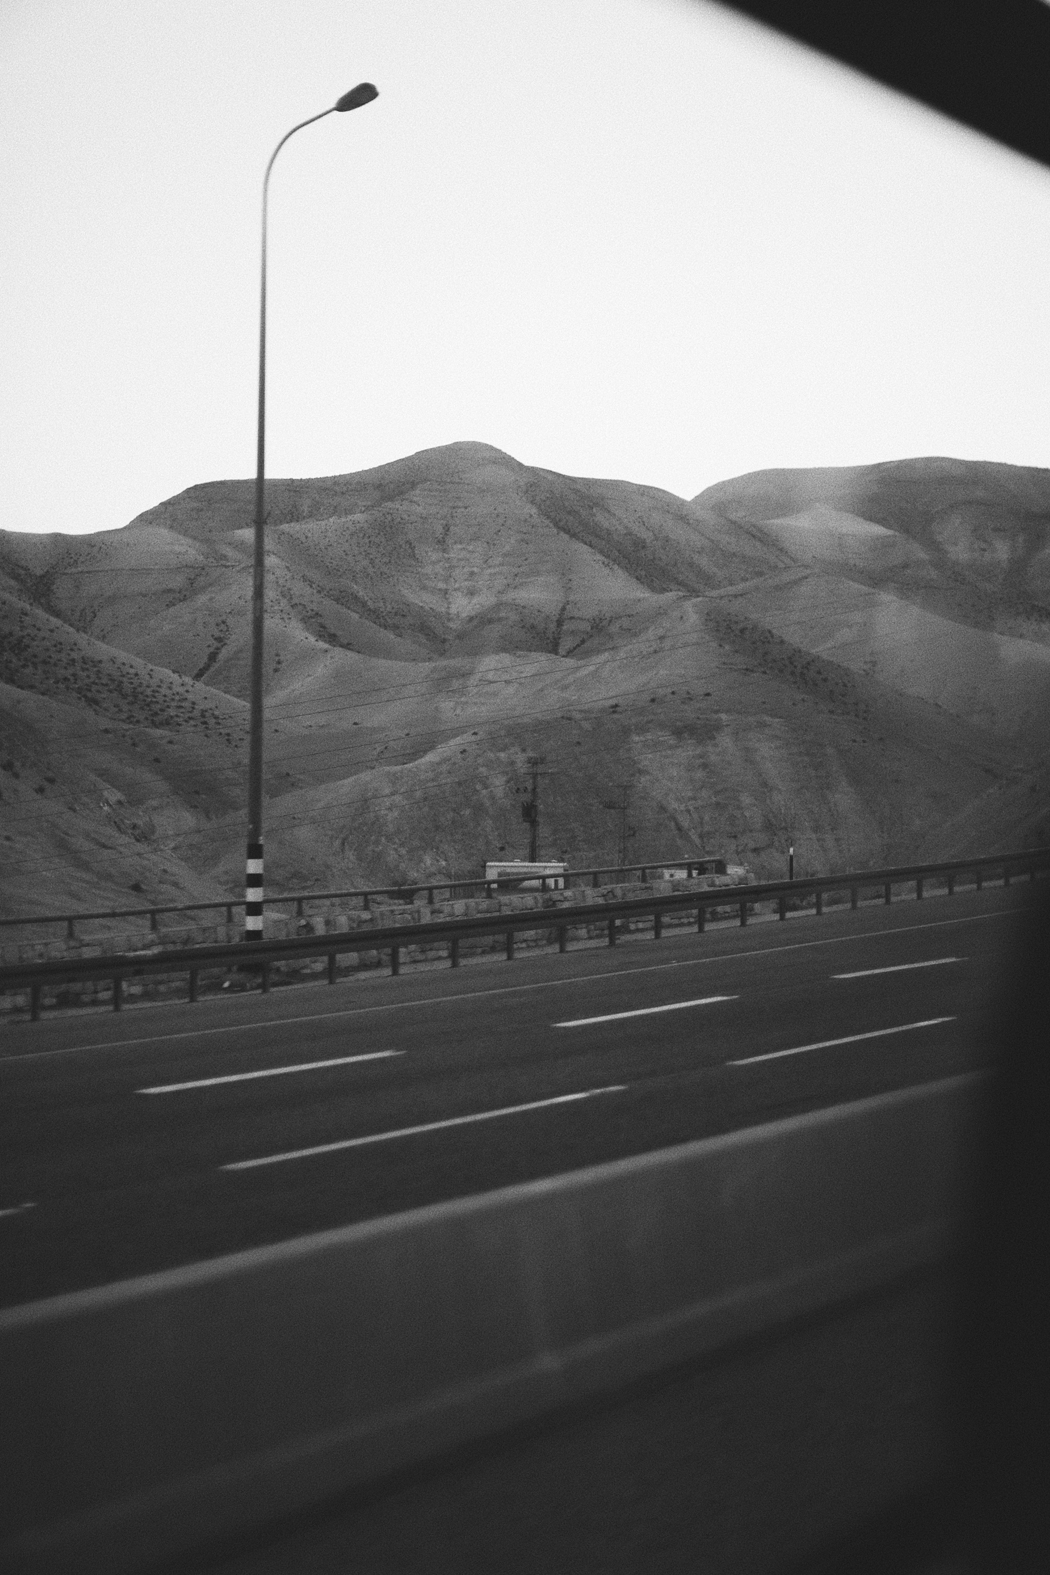 A Visual Story - Shot by Fiona Dinkelbach - Road to Dead Sea, Israel